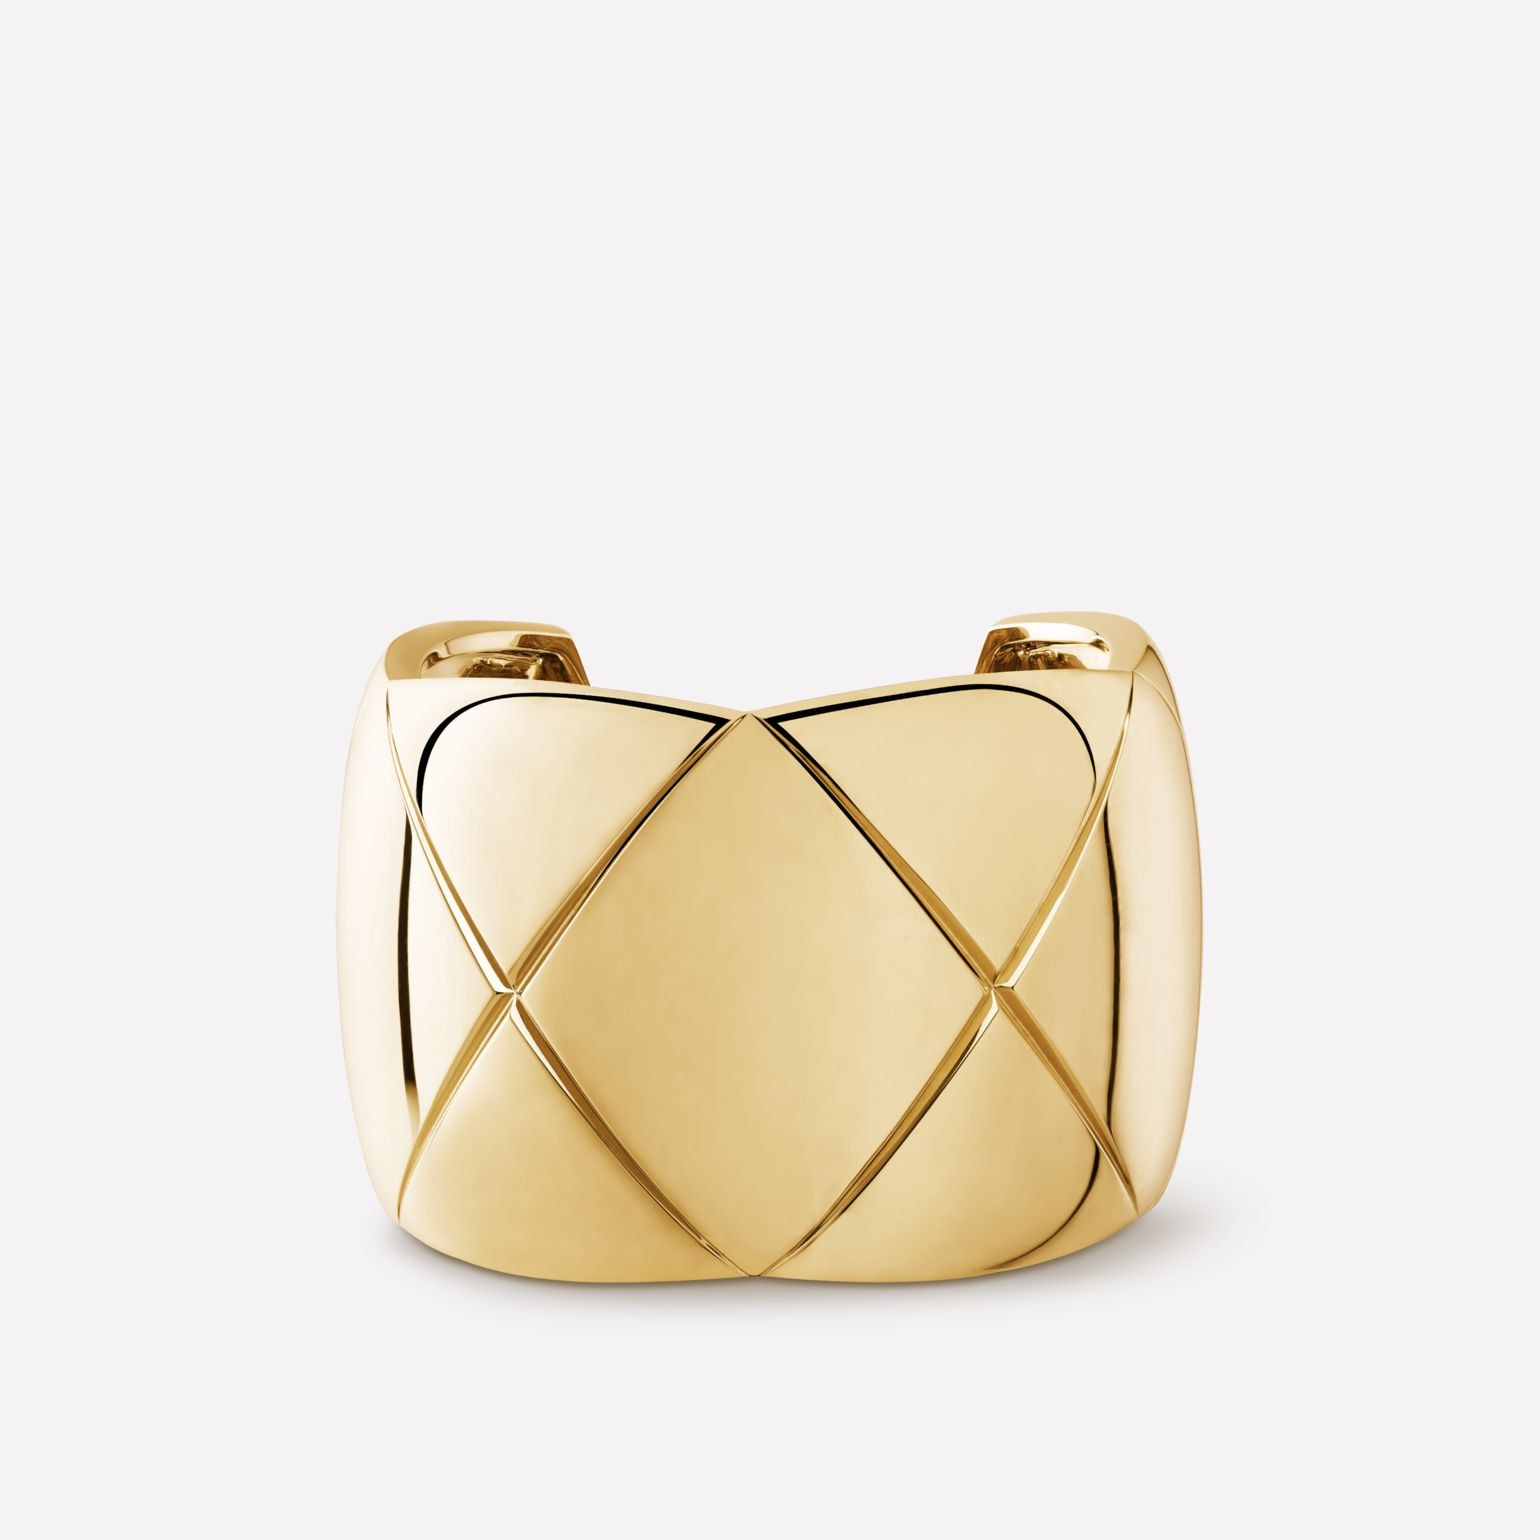 Coco Crush bracelet Quilted motif bracelet in 18K yellow gold